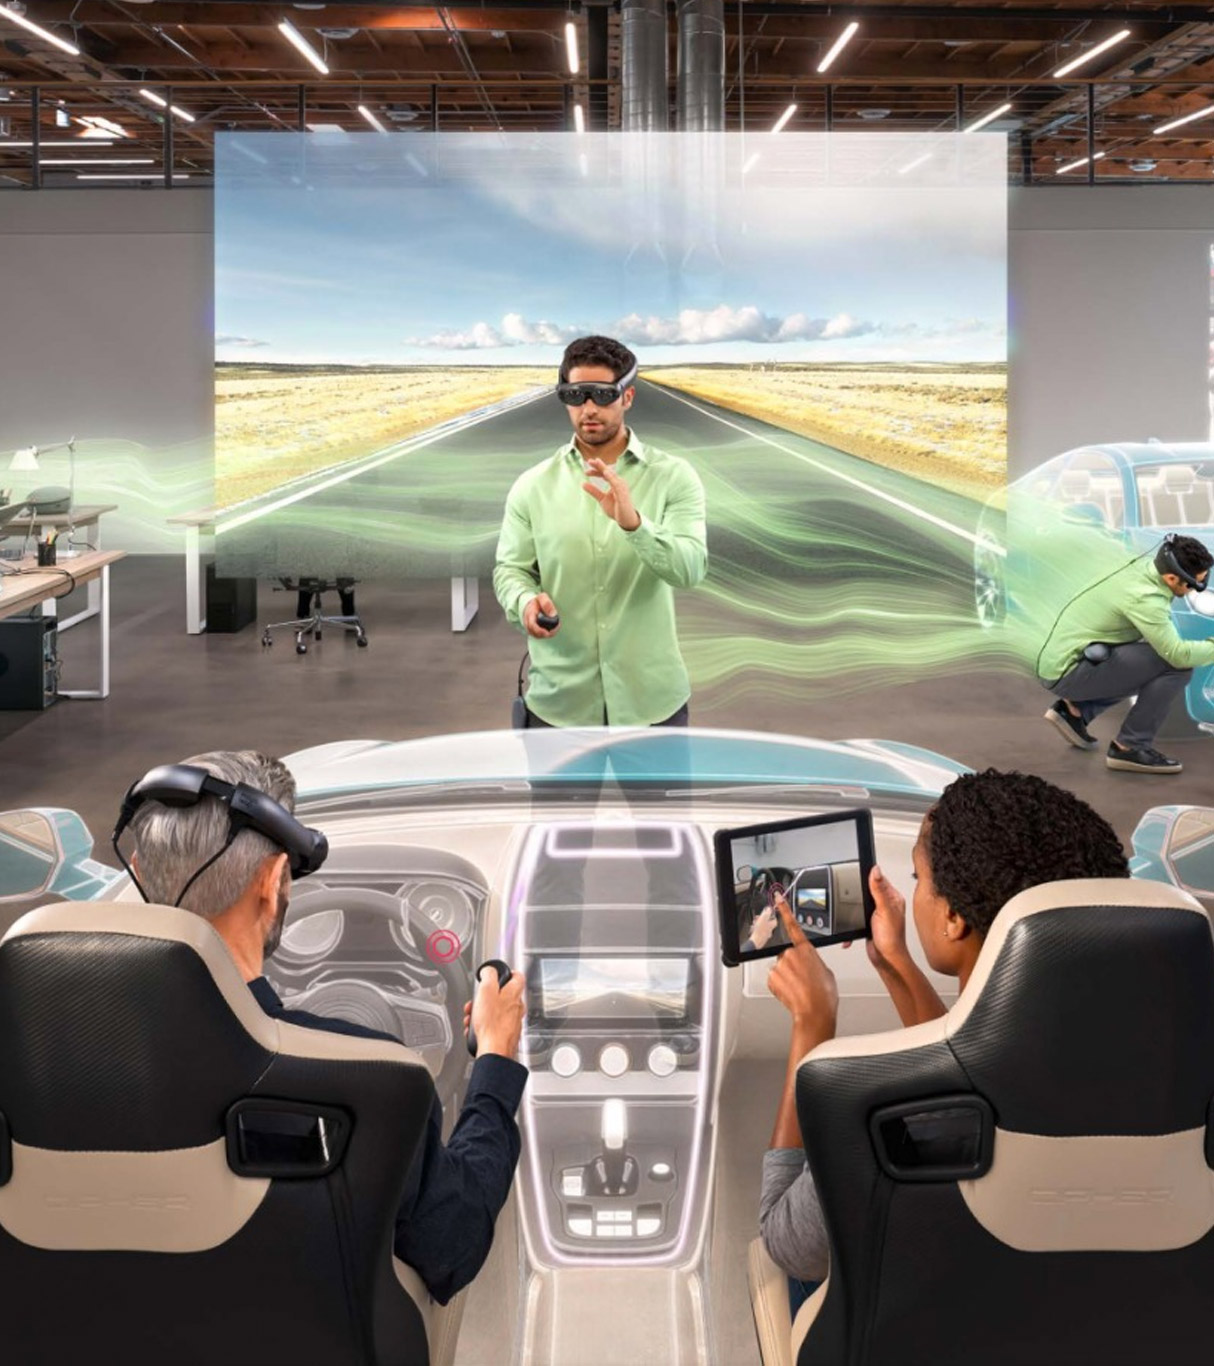 We create innovative simulations, AR/VR apps and games.